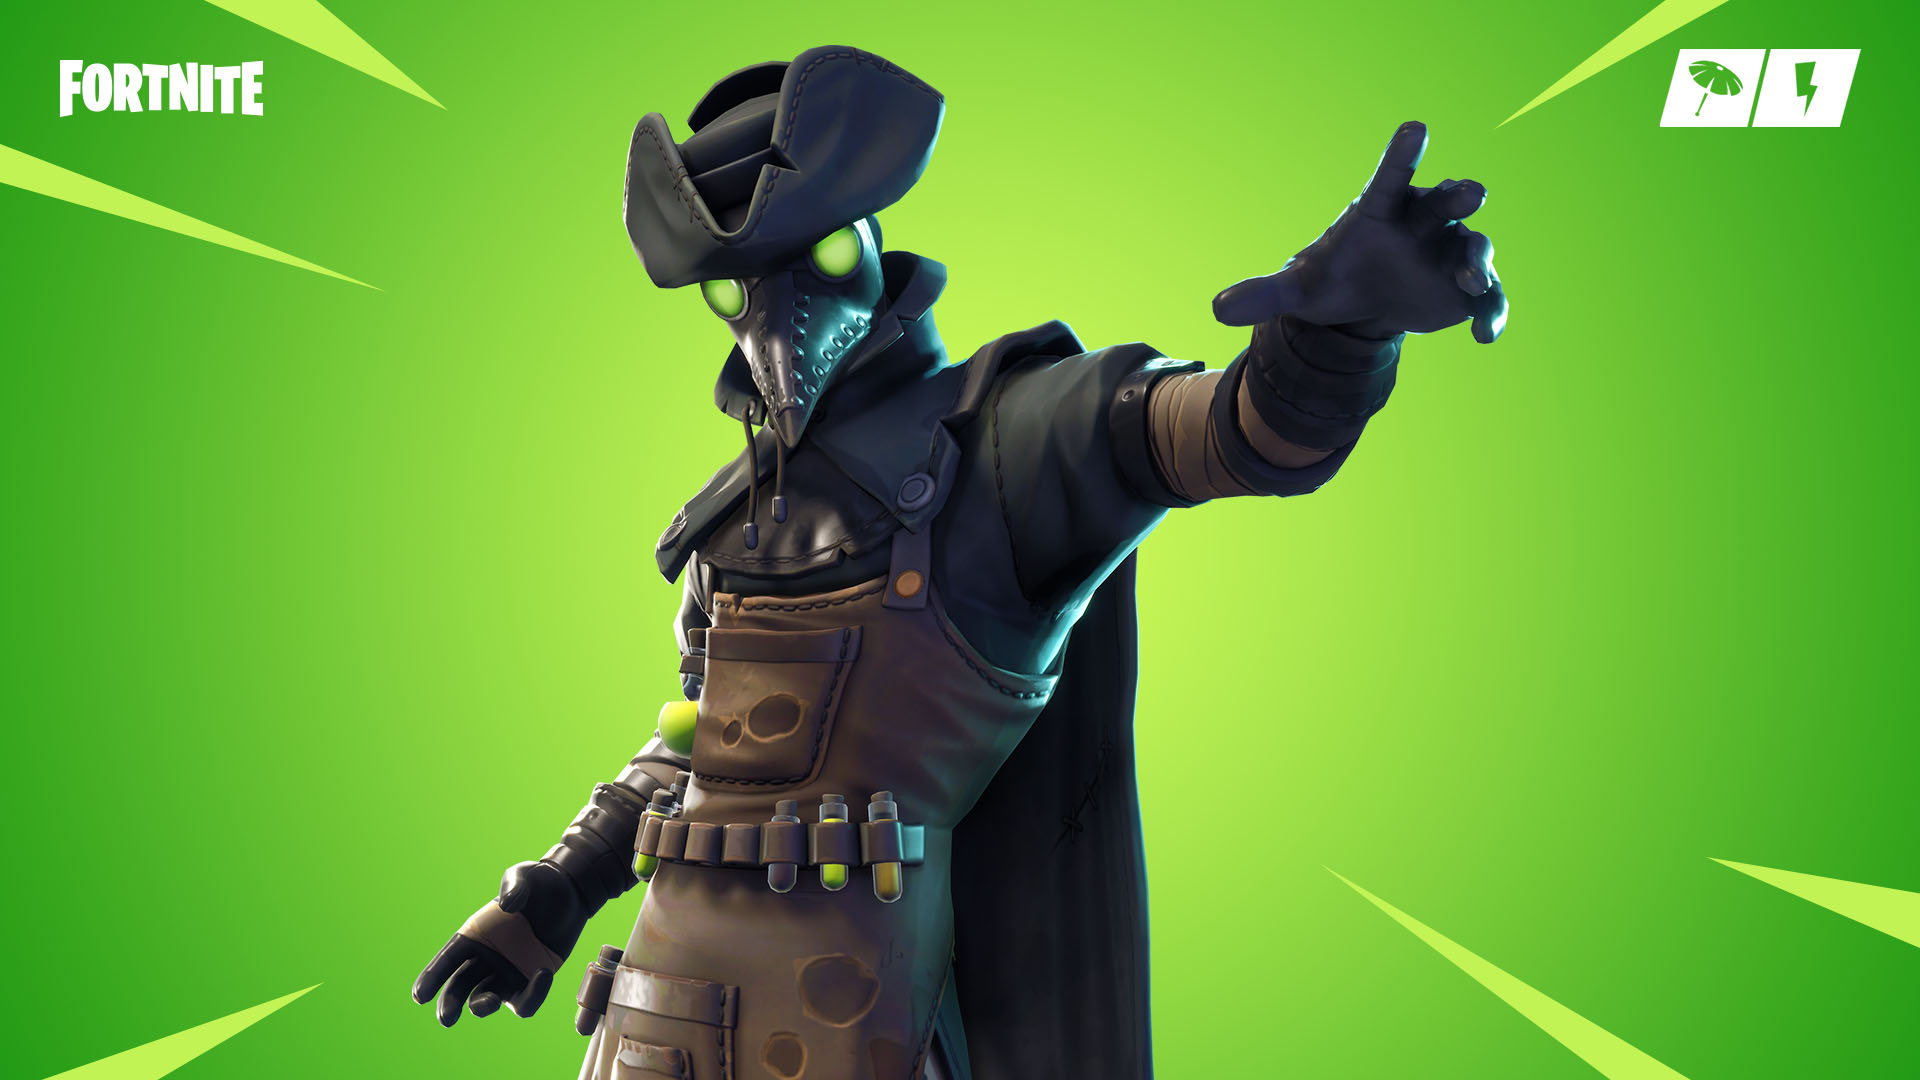 Fortnite patch v6 21 adds balloons, Dim Mak Igor skin and vaults